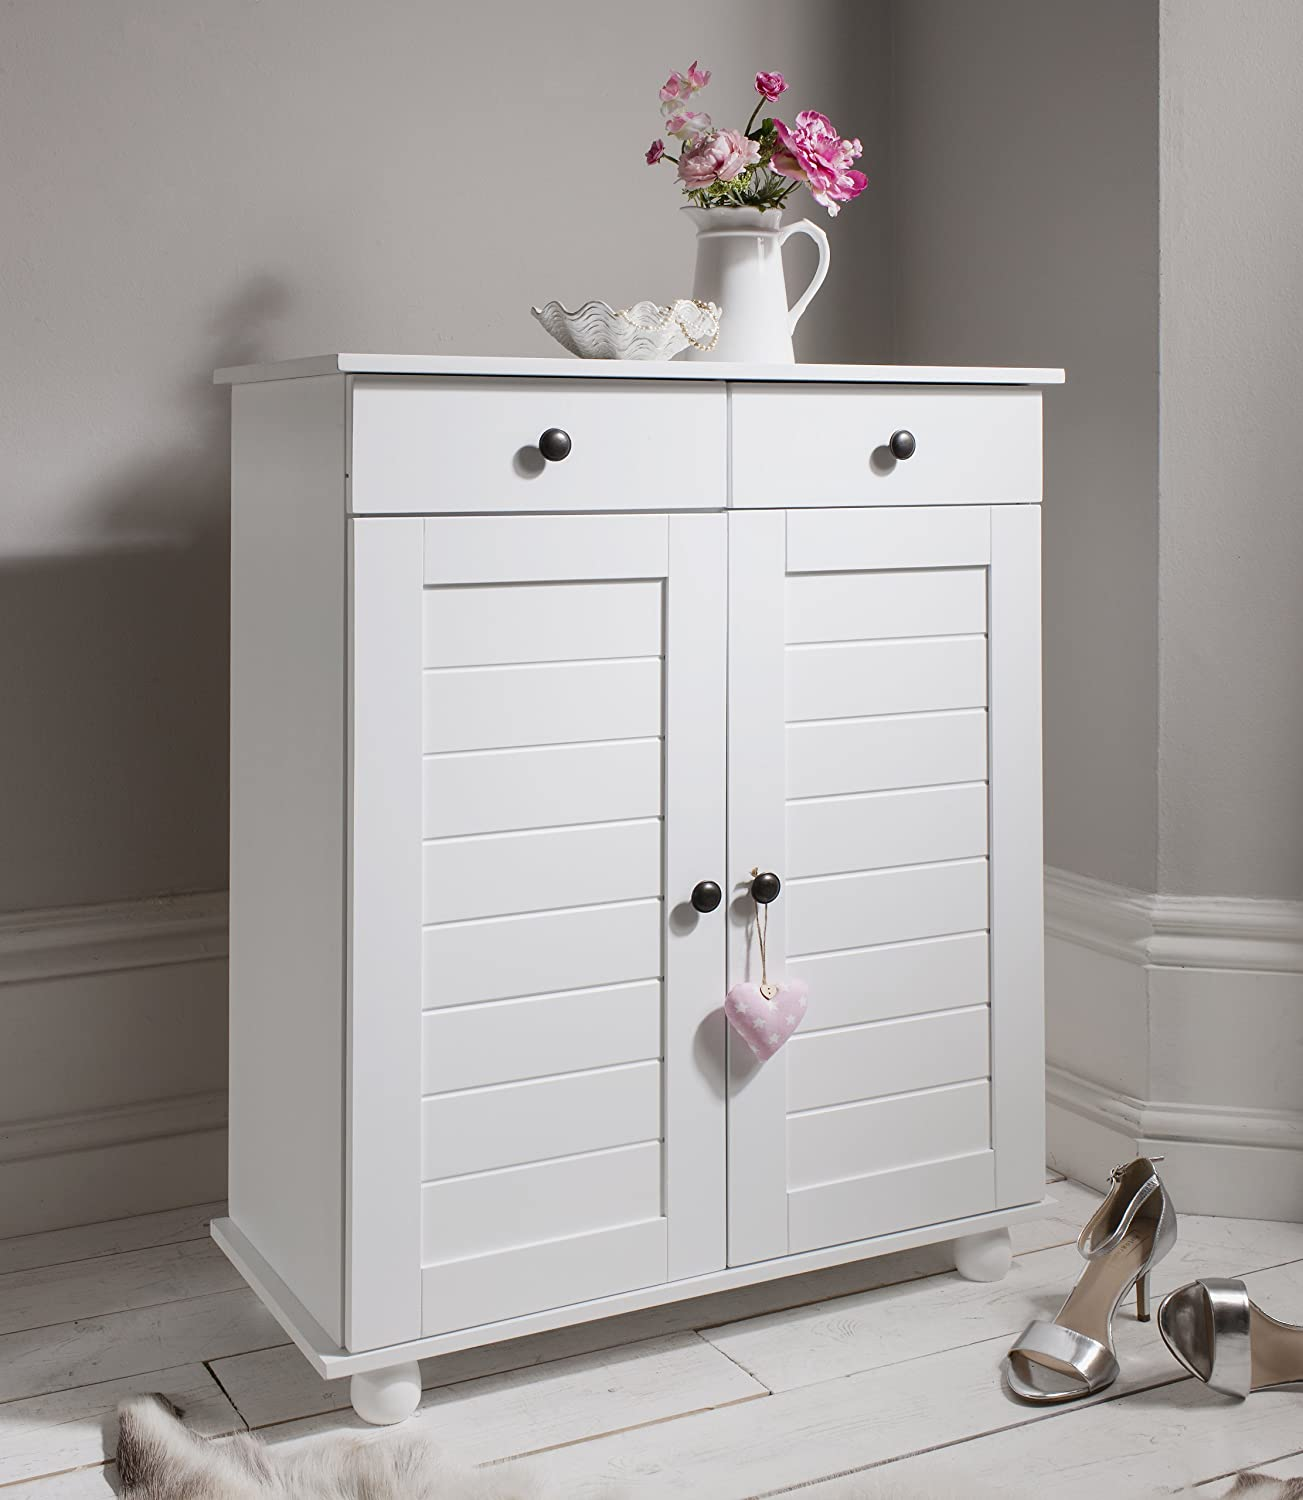 Ordinaire Shoe Storage Cabinet Deluxe With Storage Drawer Heathfield In